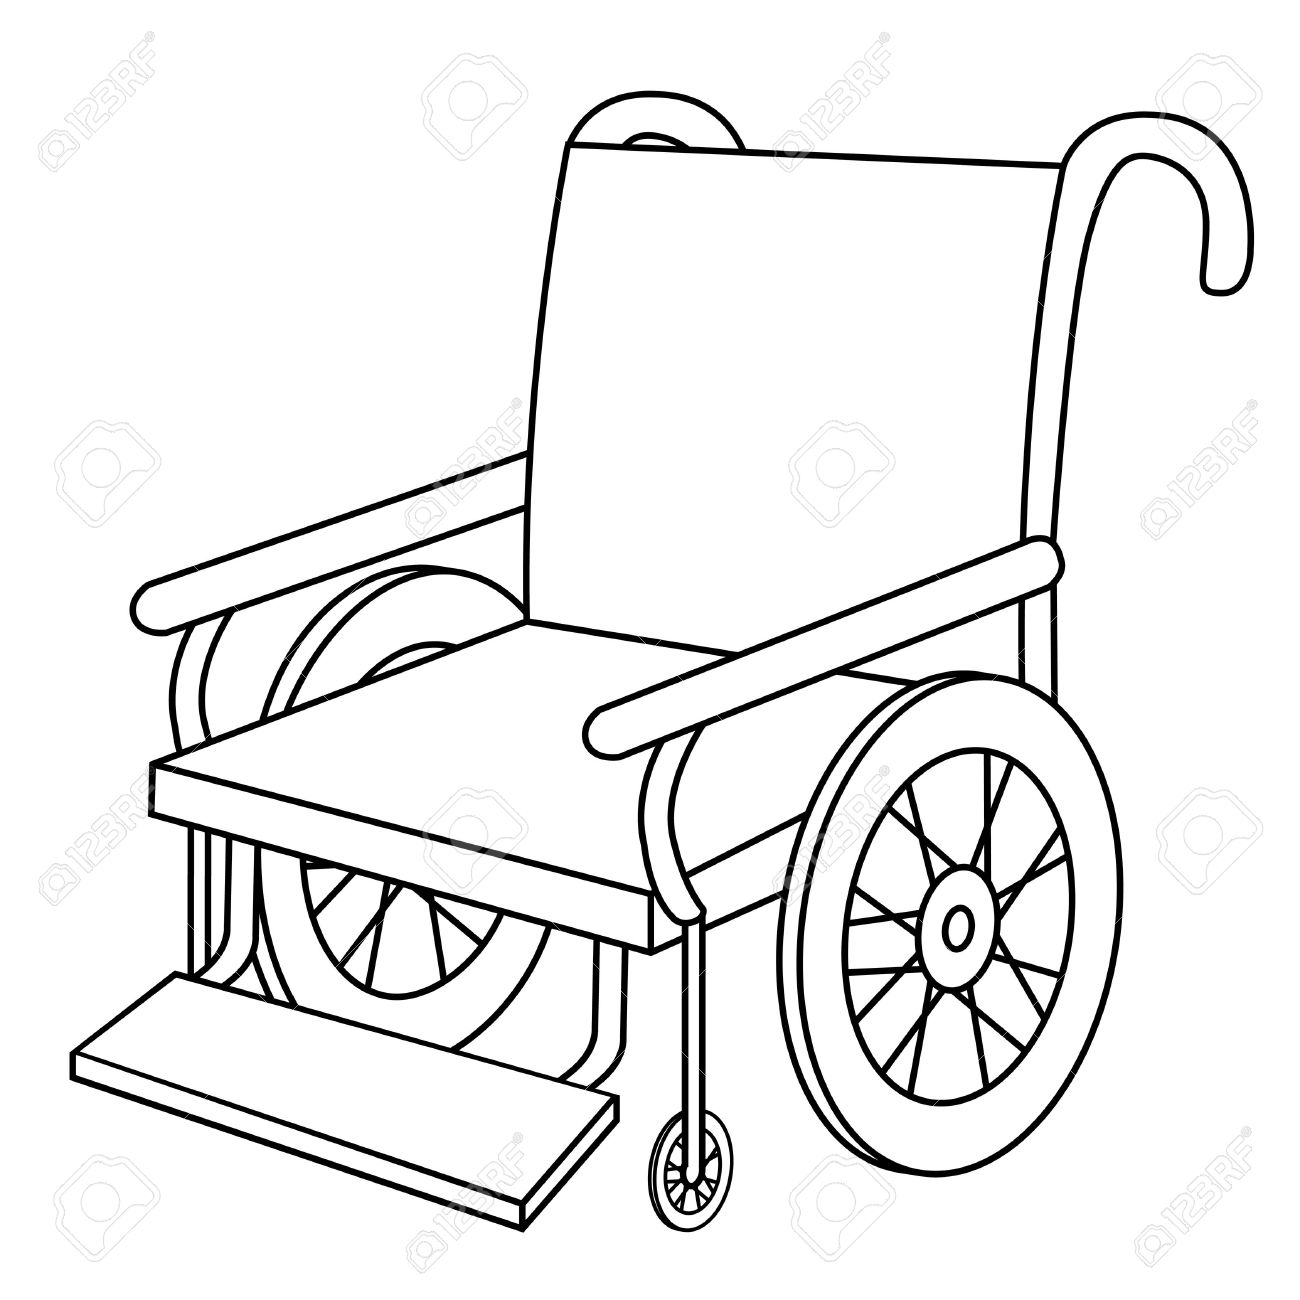 Wheelchair clipart black and white 3 » Clipart Station.